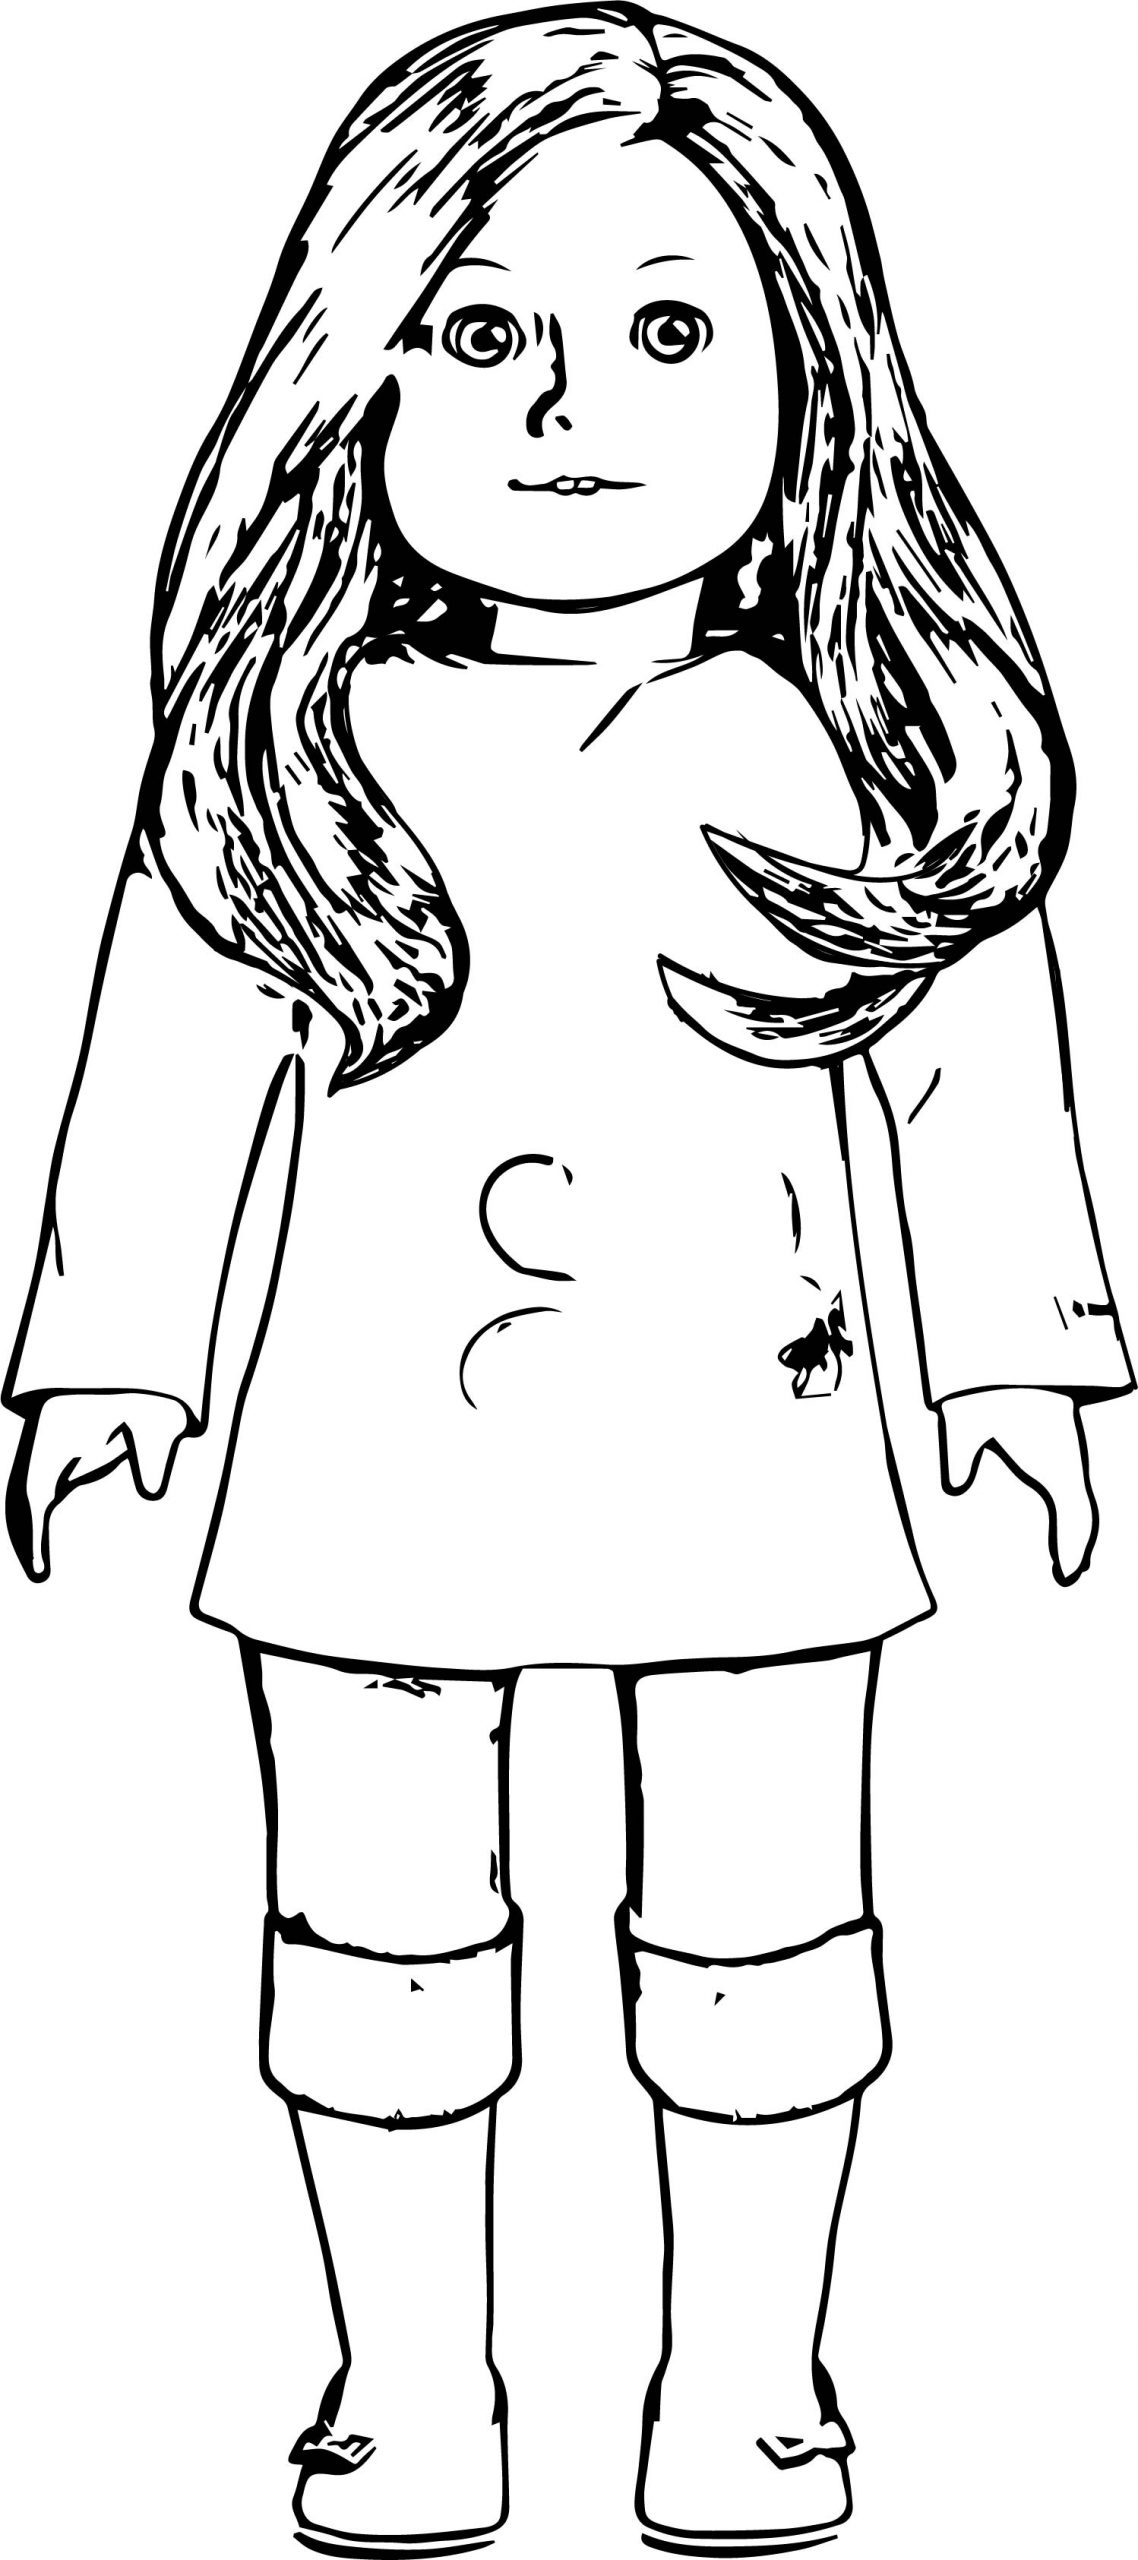 pictures of american girl dolls to color american girl coloring pages best coloring pages for kids dolls of american color to girl pictures